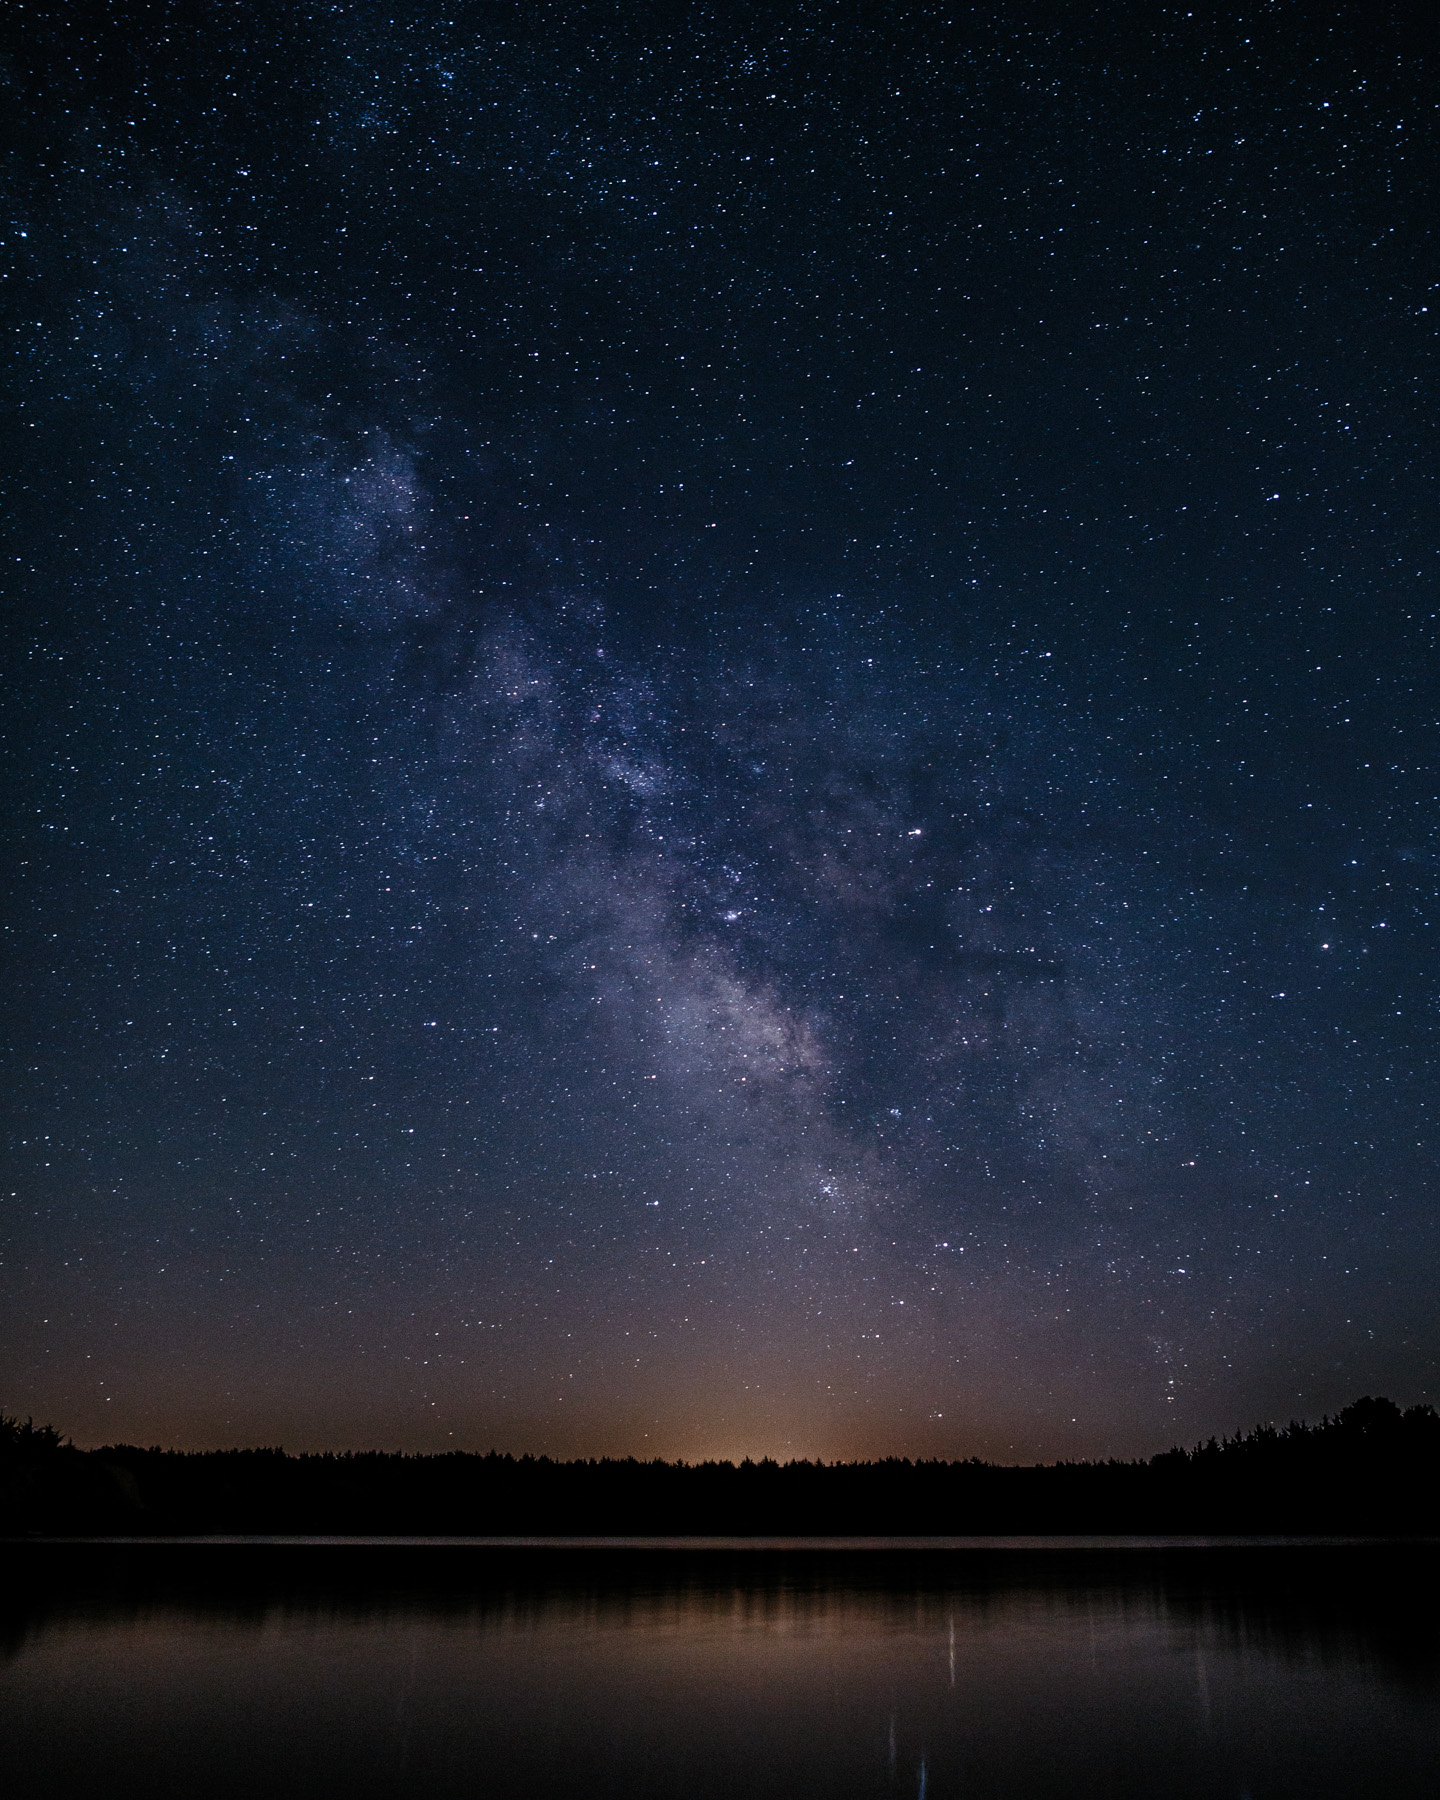 Michael_Liedtke_Milkyway_Galaxy.jpg